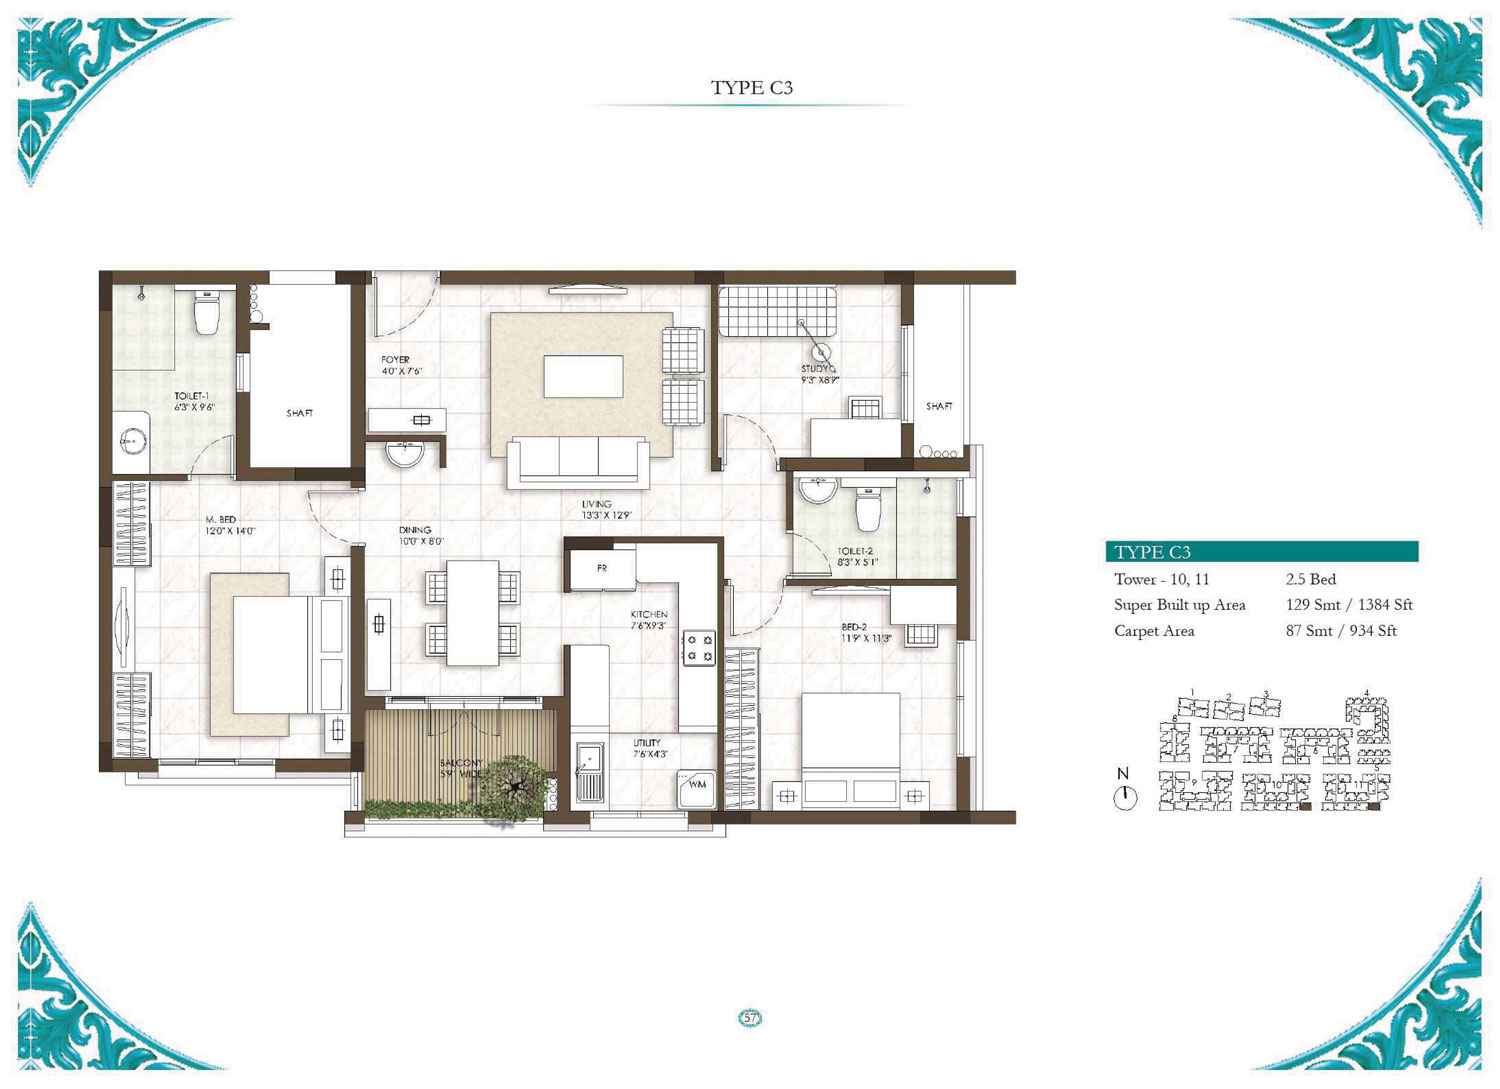 Type C3 - 2.5 Bed - 1384 Sq Ft